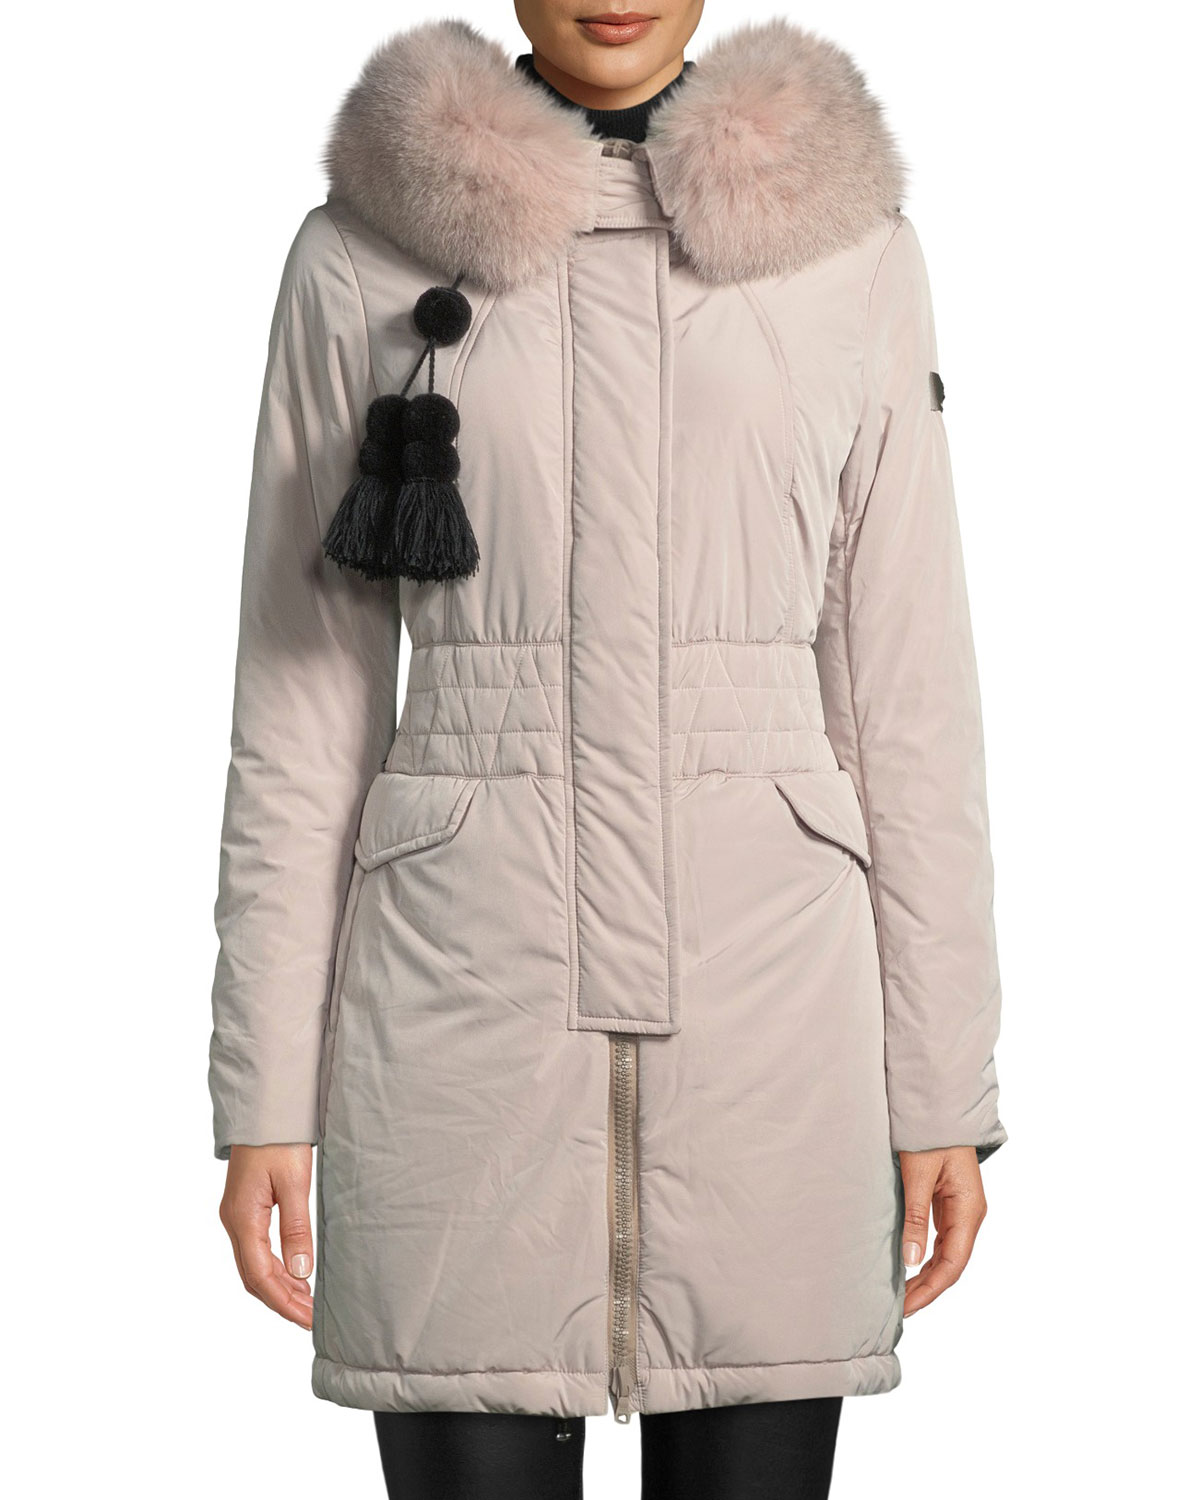 PEUTEREY Aponi Hooded Parka Coat W/ Detachable Fur in Gray